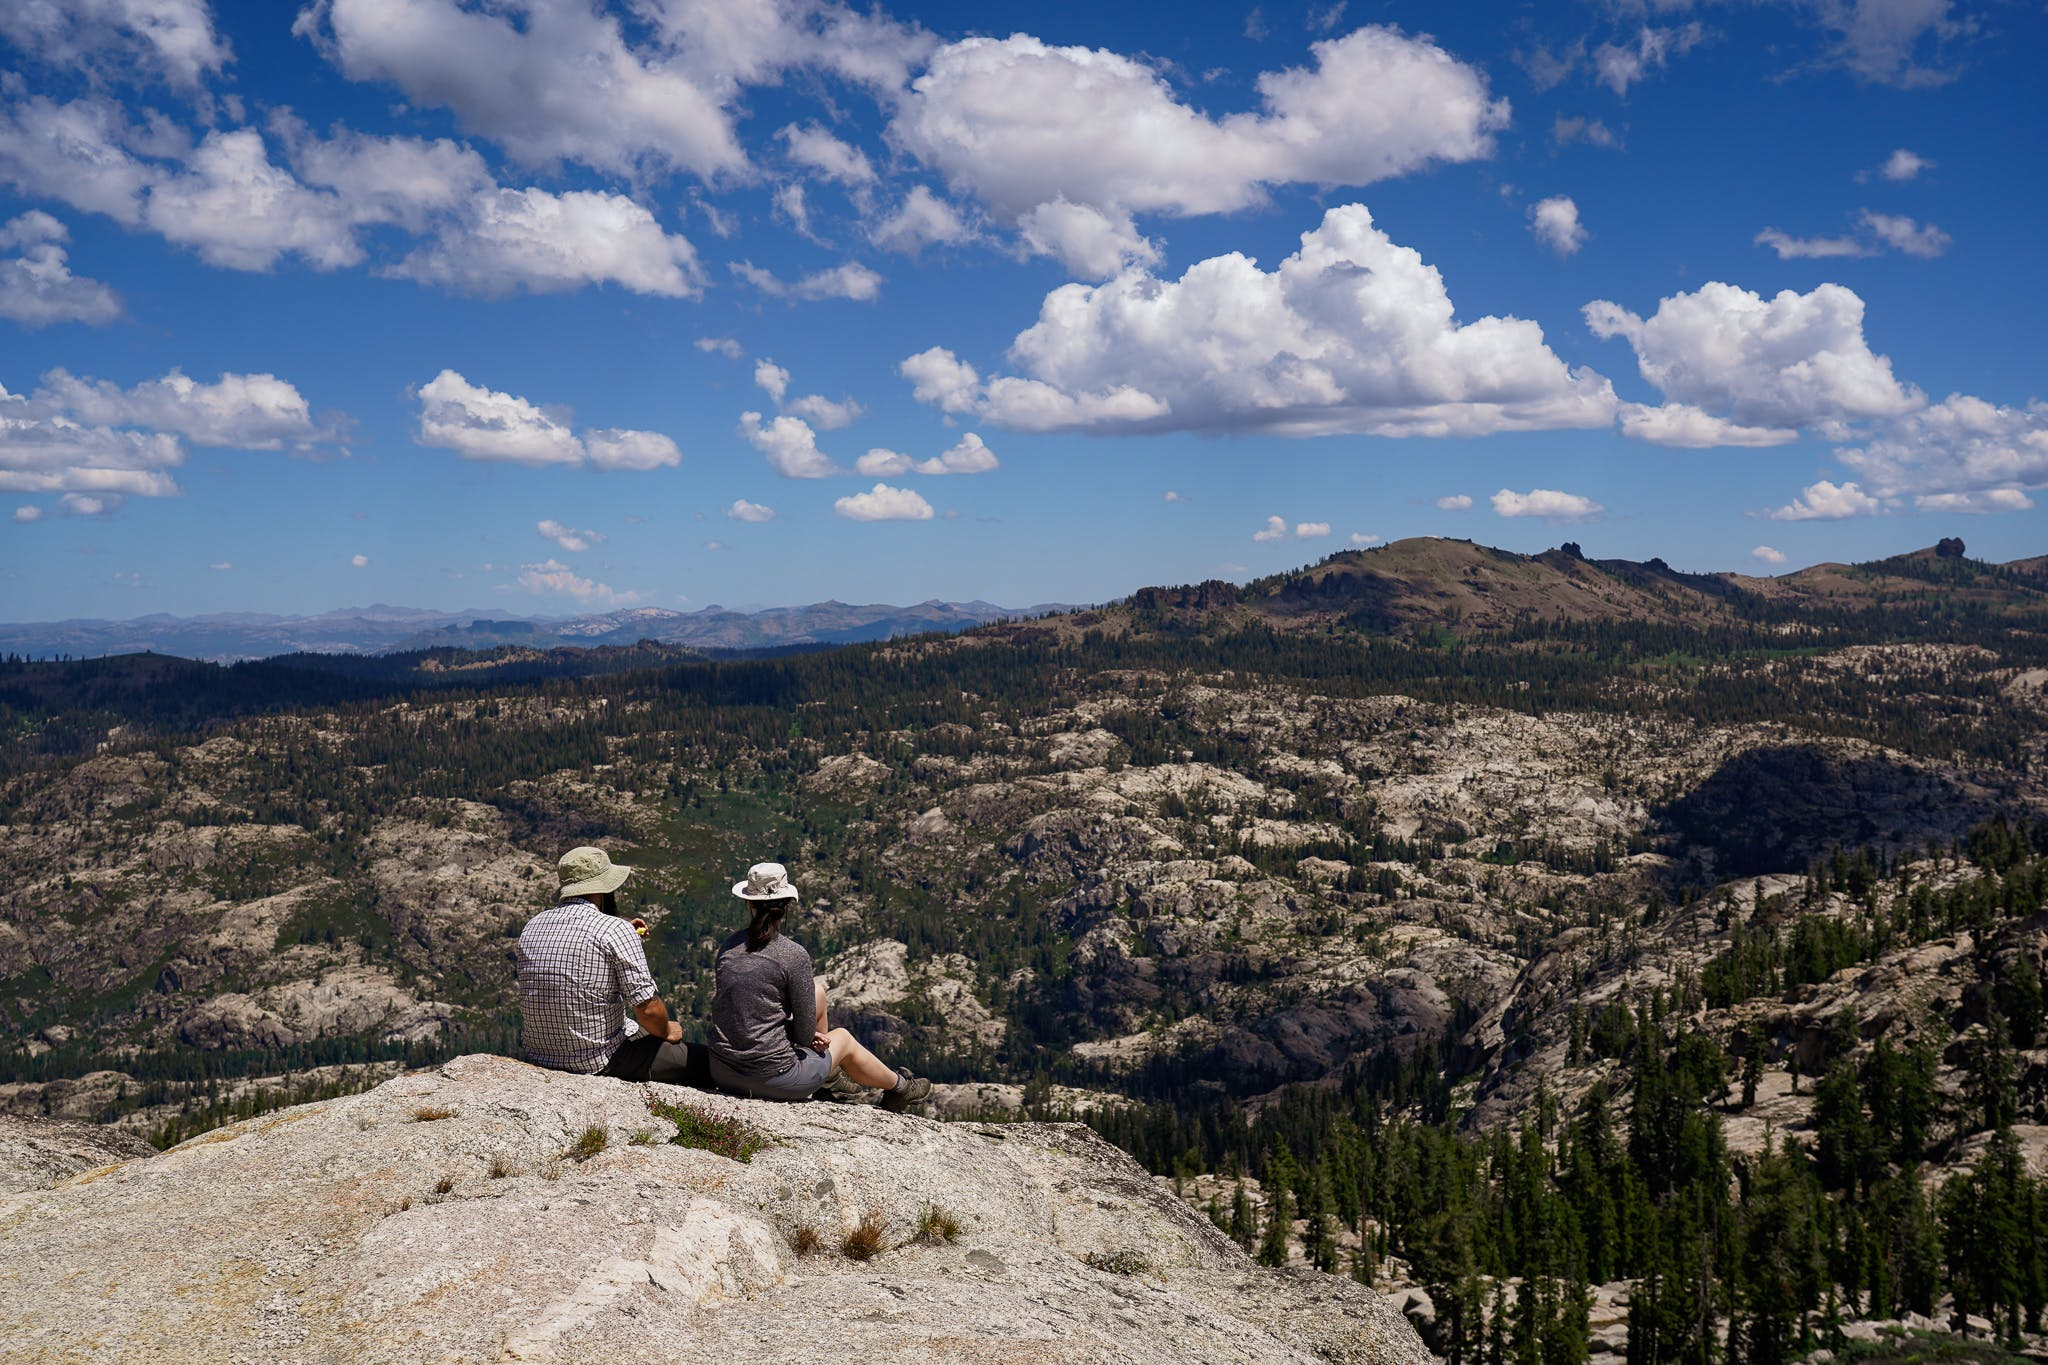 Hikers at Burst Rock in the Emigrant Wilderness